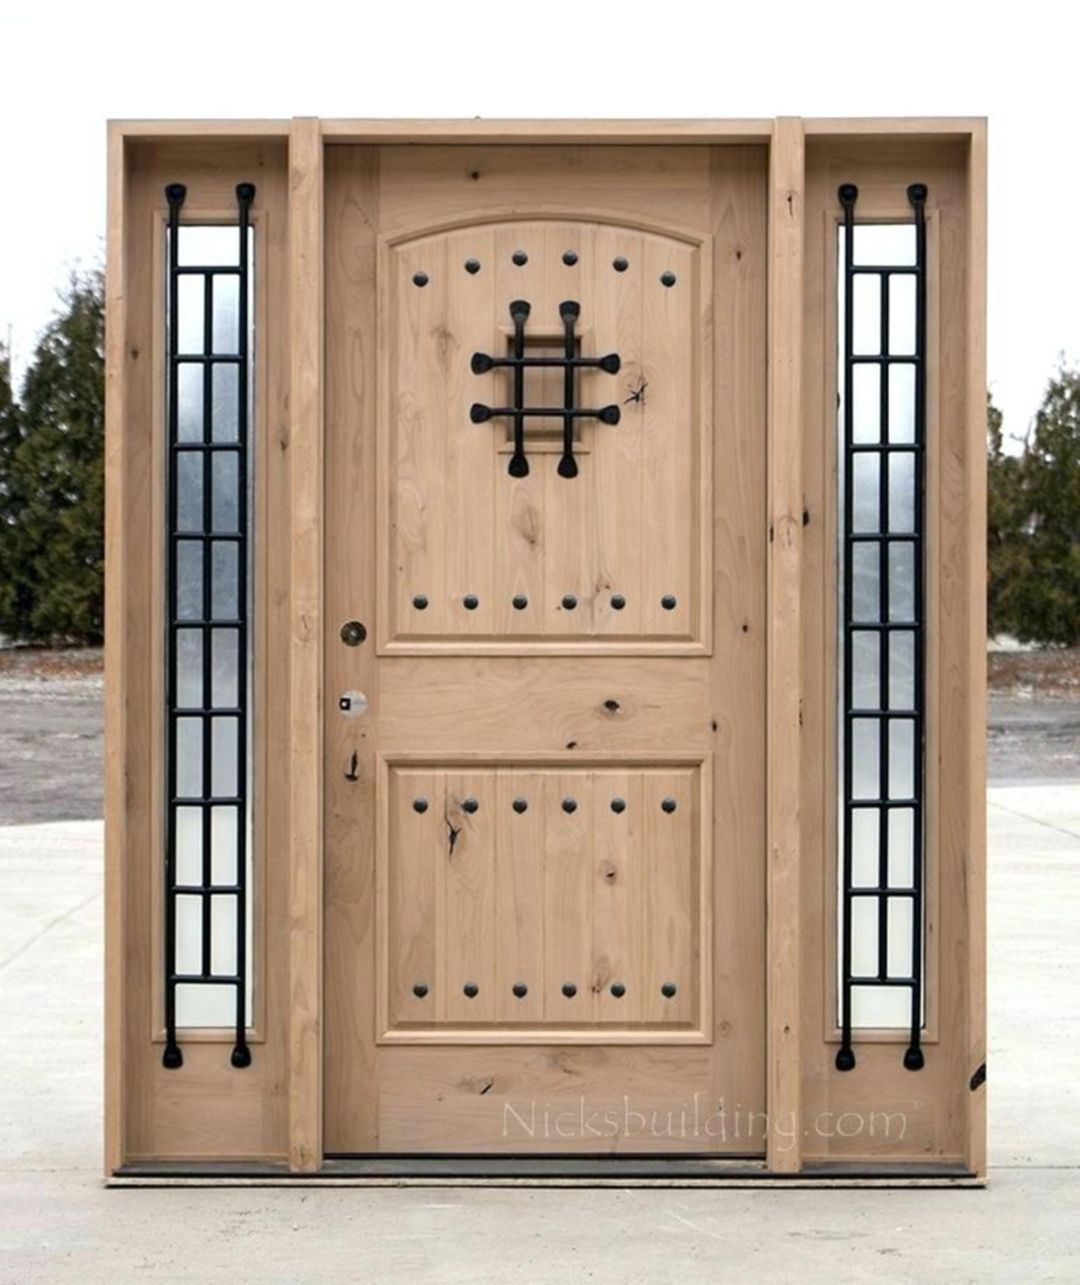 25 Spectacular Wooden Front Door Designs For Your Home Inspiration Protecciones